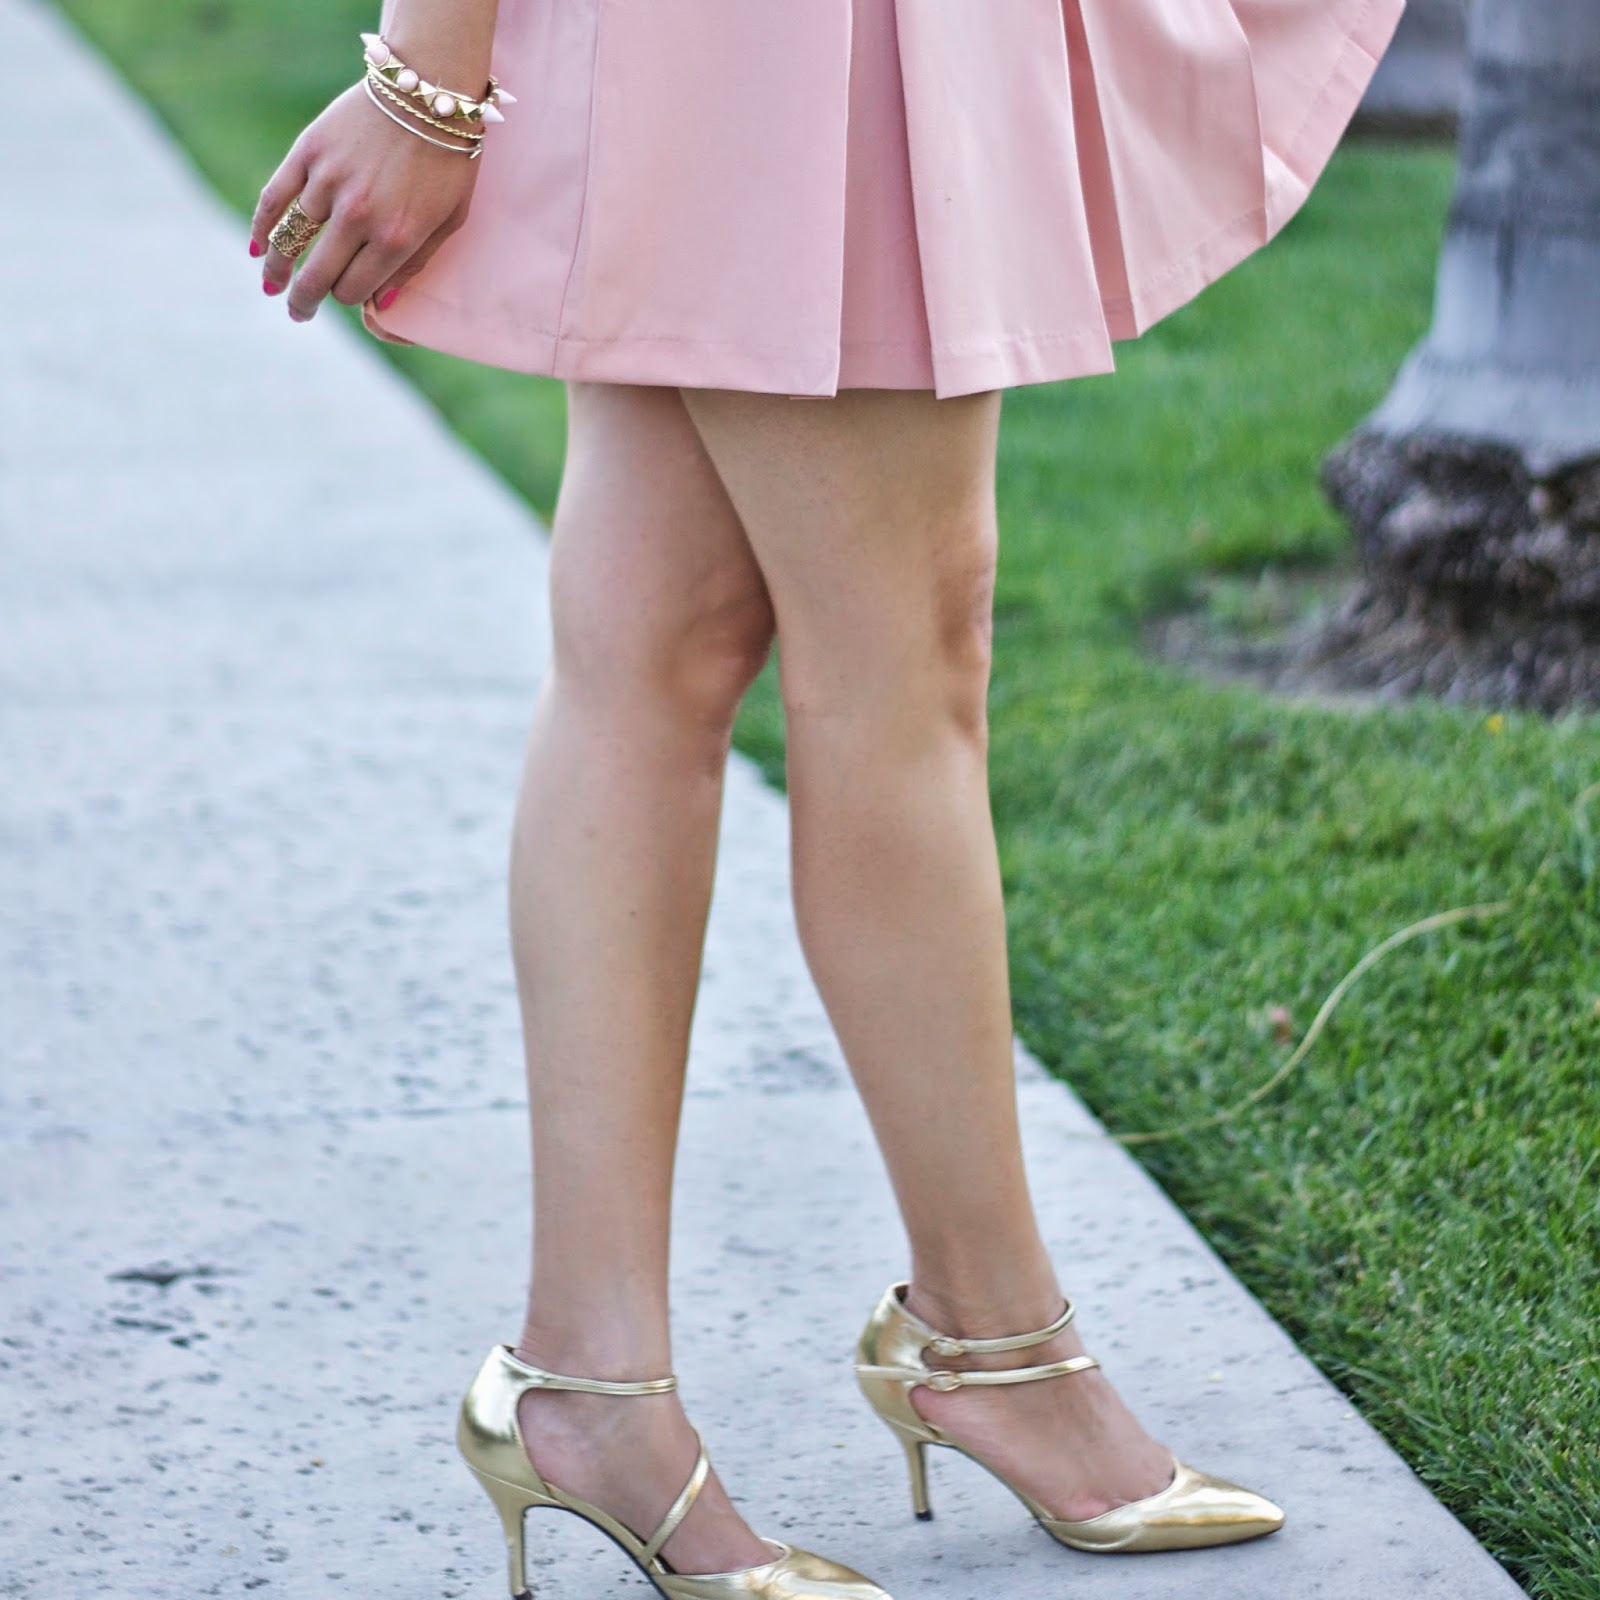 ASOS gold pointed strappy shoes, gold metallic shoes, luxurious gold shoes